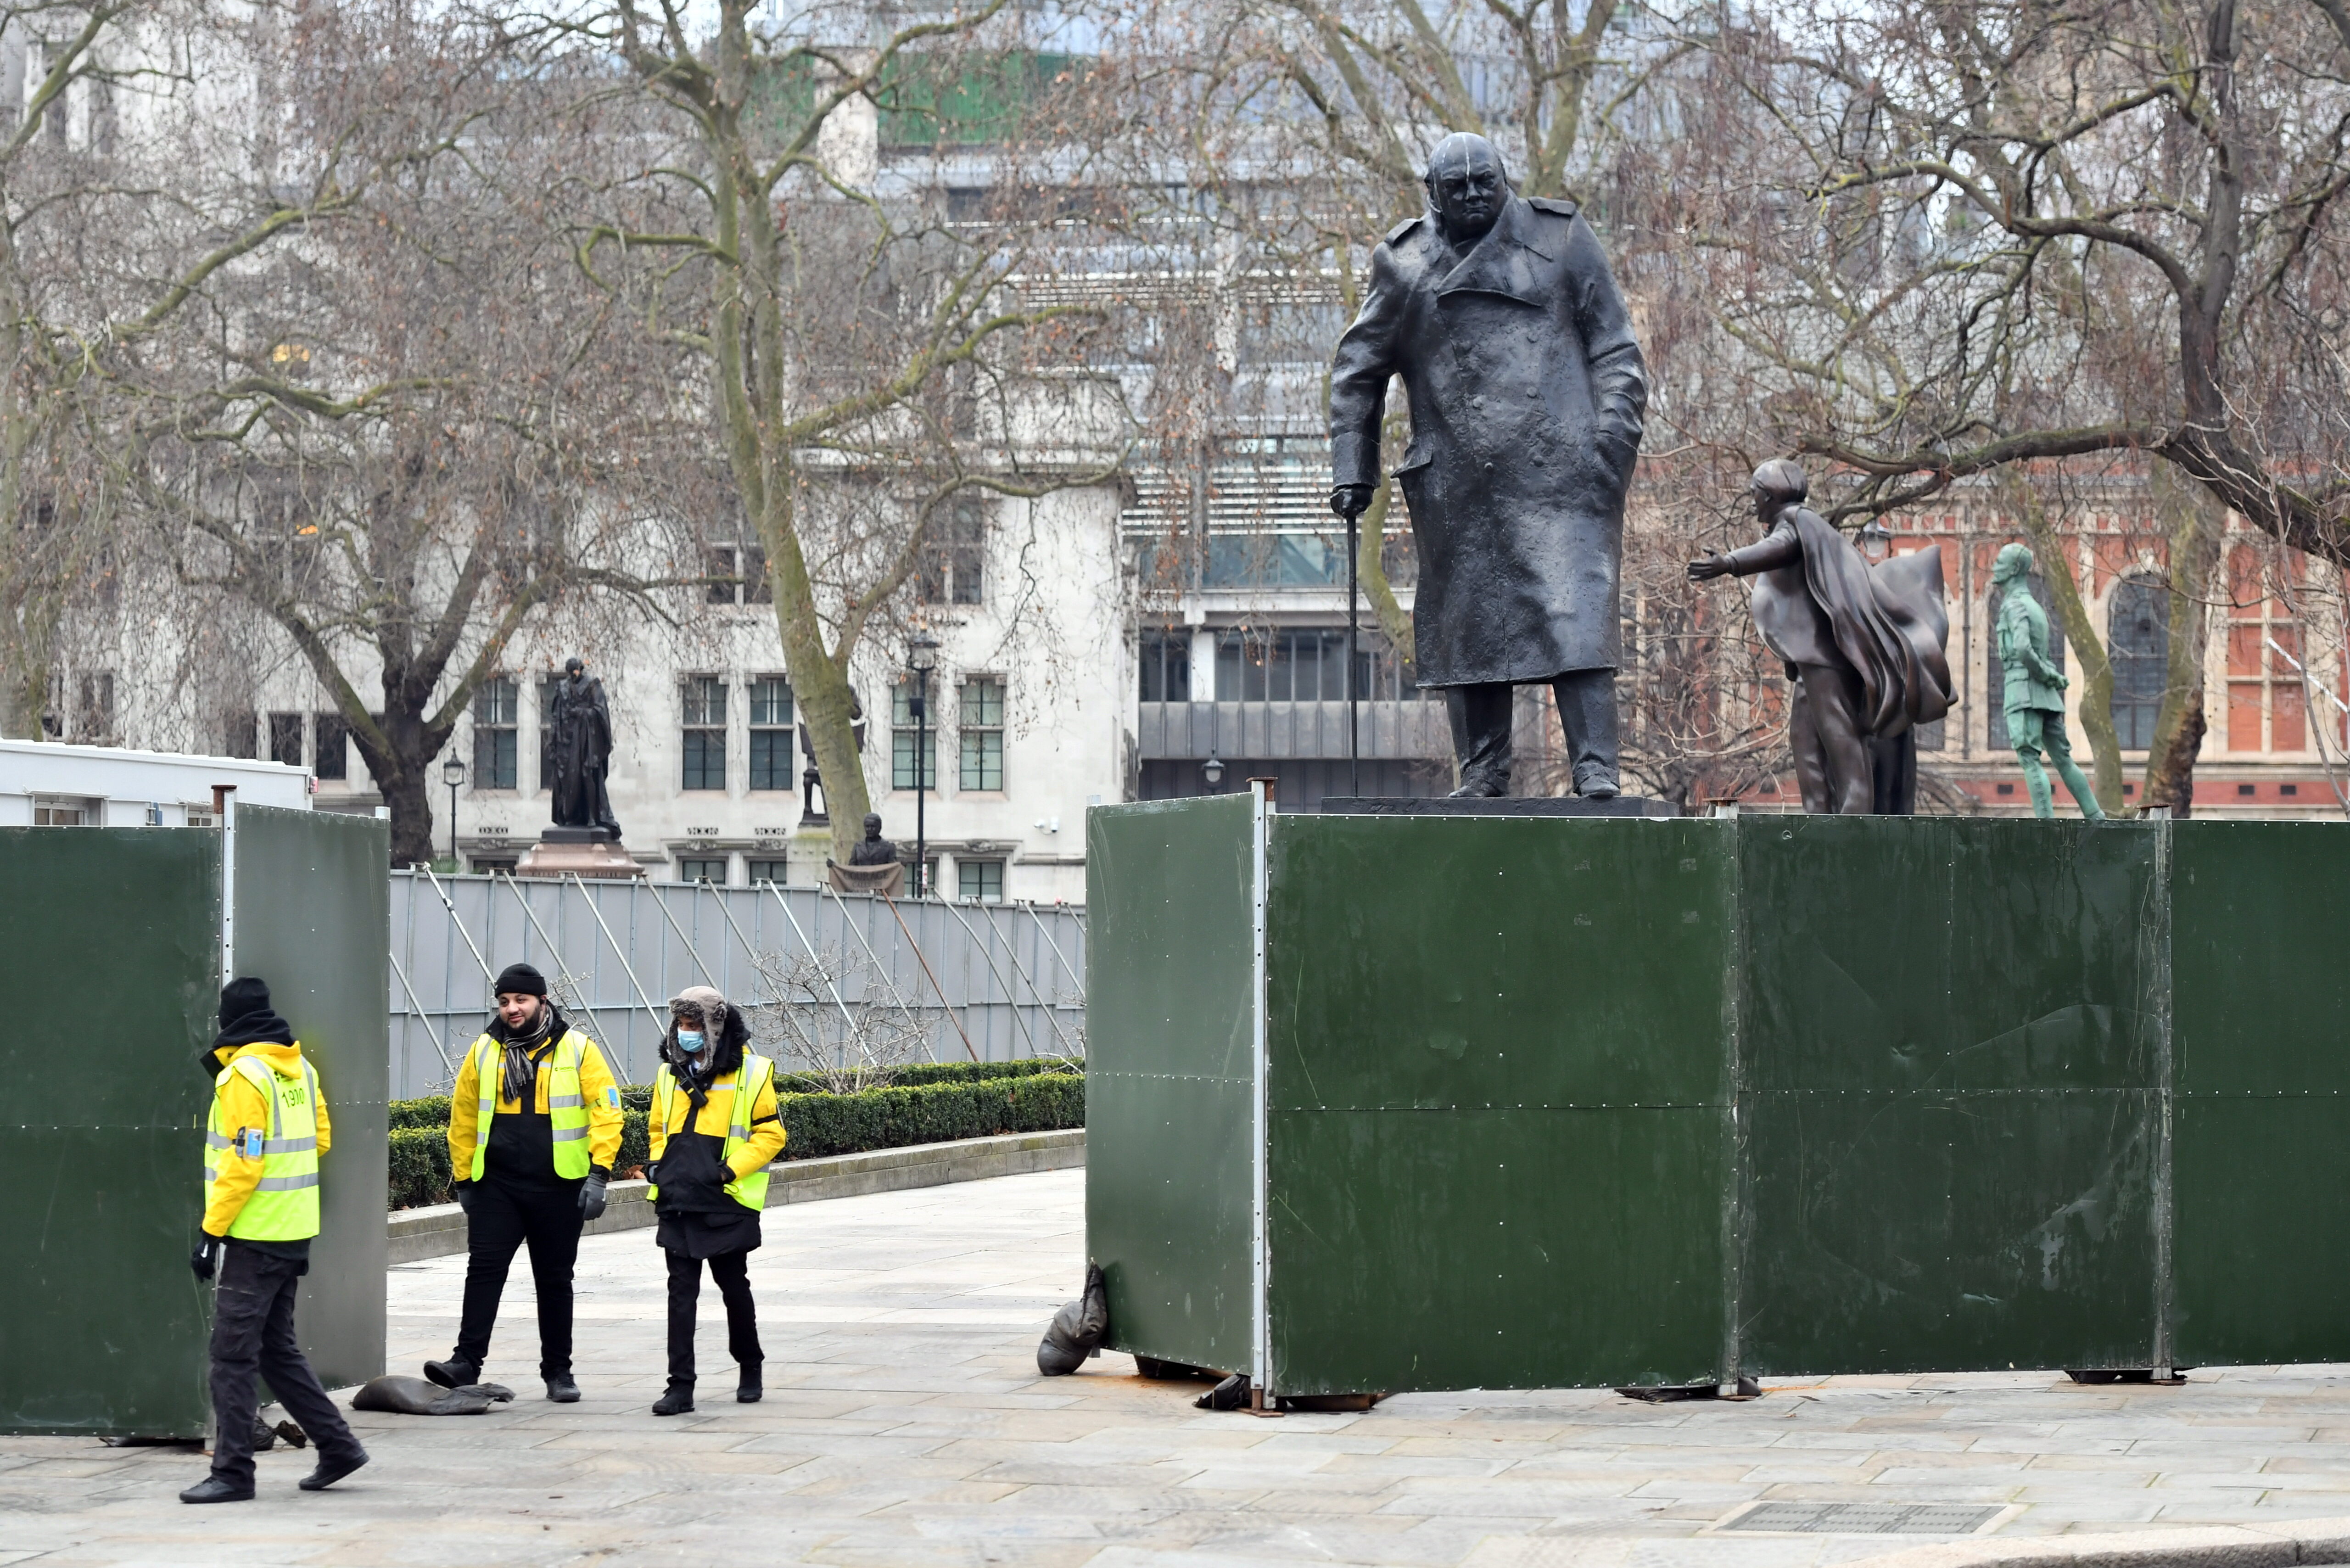 """Fencing around the Winston Churchill statue in Parliament Square, London, ahead of New Year's Eve celebrations. People are being urged to stay home on New Year's Eve to prevent the """"dire"""" situation in hospitals from getting worse. (Photo by Dominic Lipinski/PA Images via Getty Images)"""